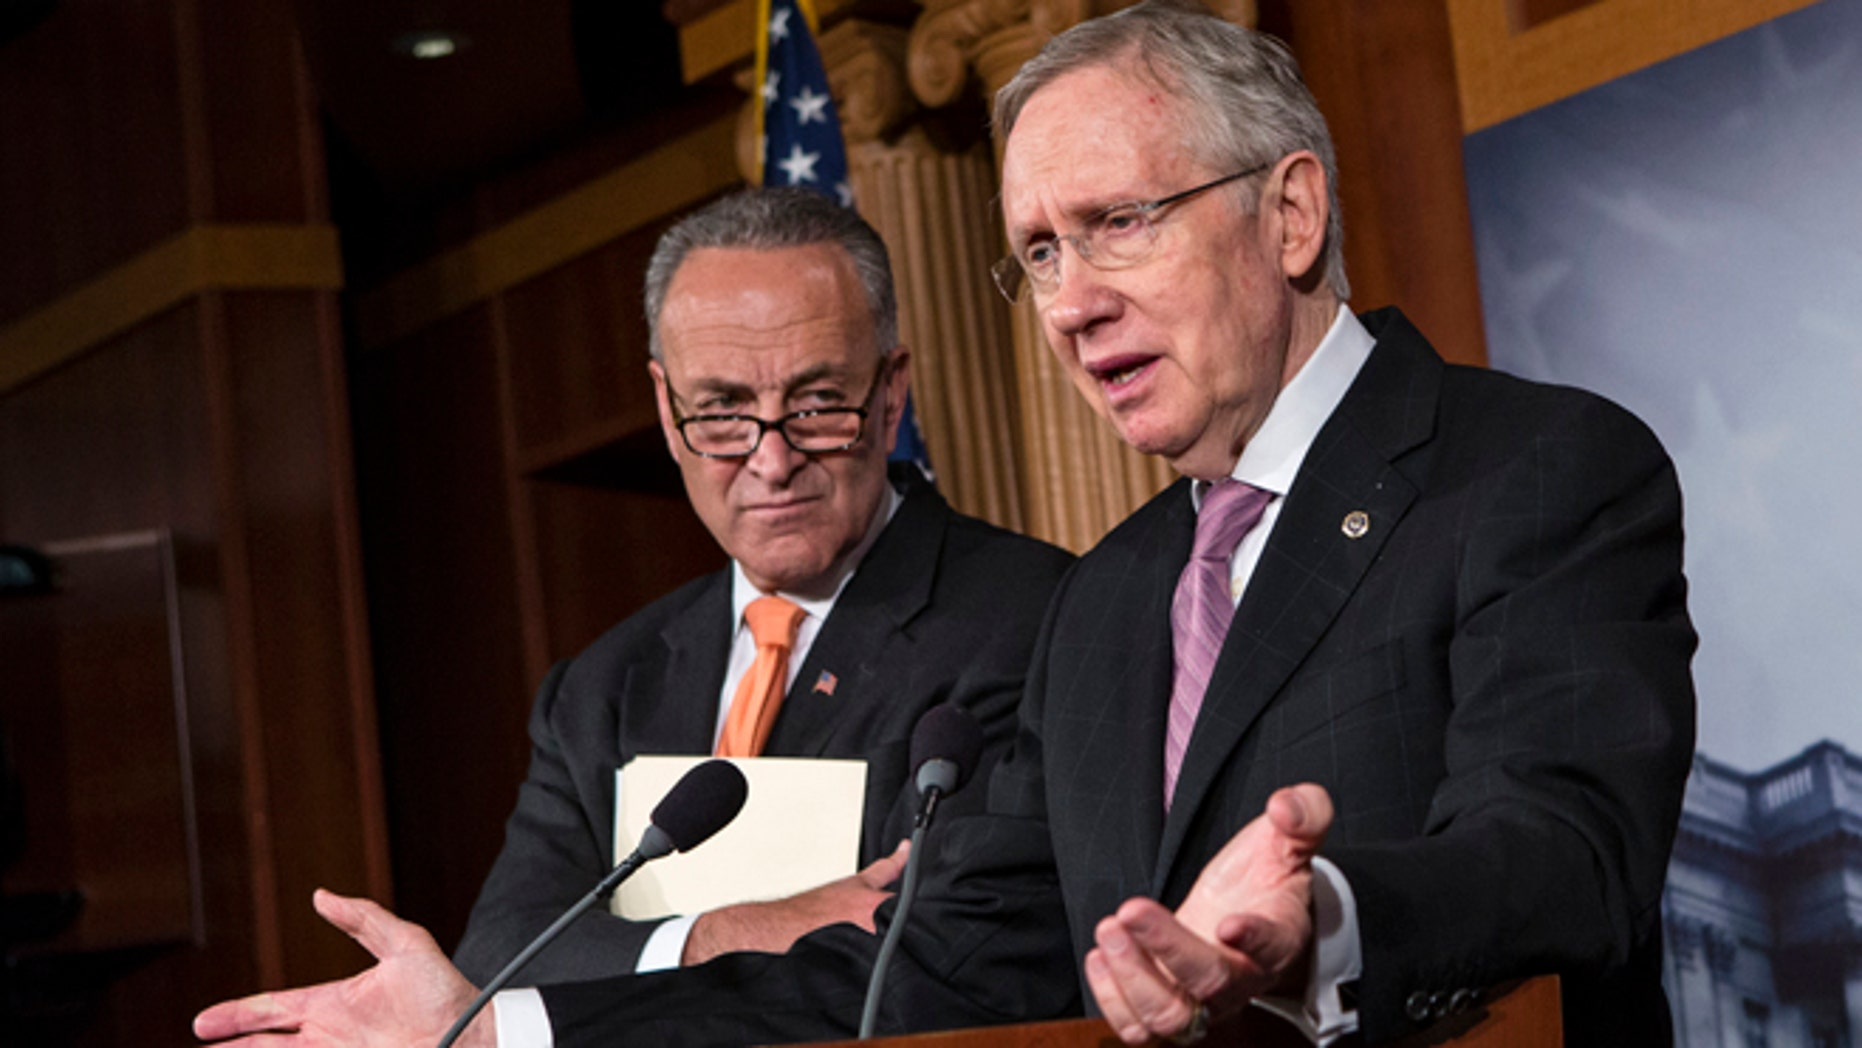 Oct. 2, 2013: Senate Majority Leader Harry Reid of Nev., right, accompanied by Sen. Charles Schumer, D-N.Y., speaks on Capitol Hill.